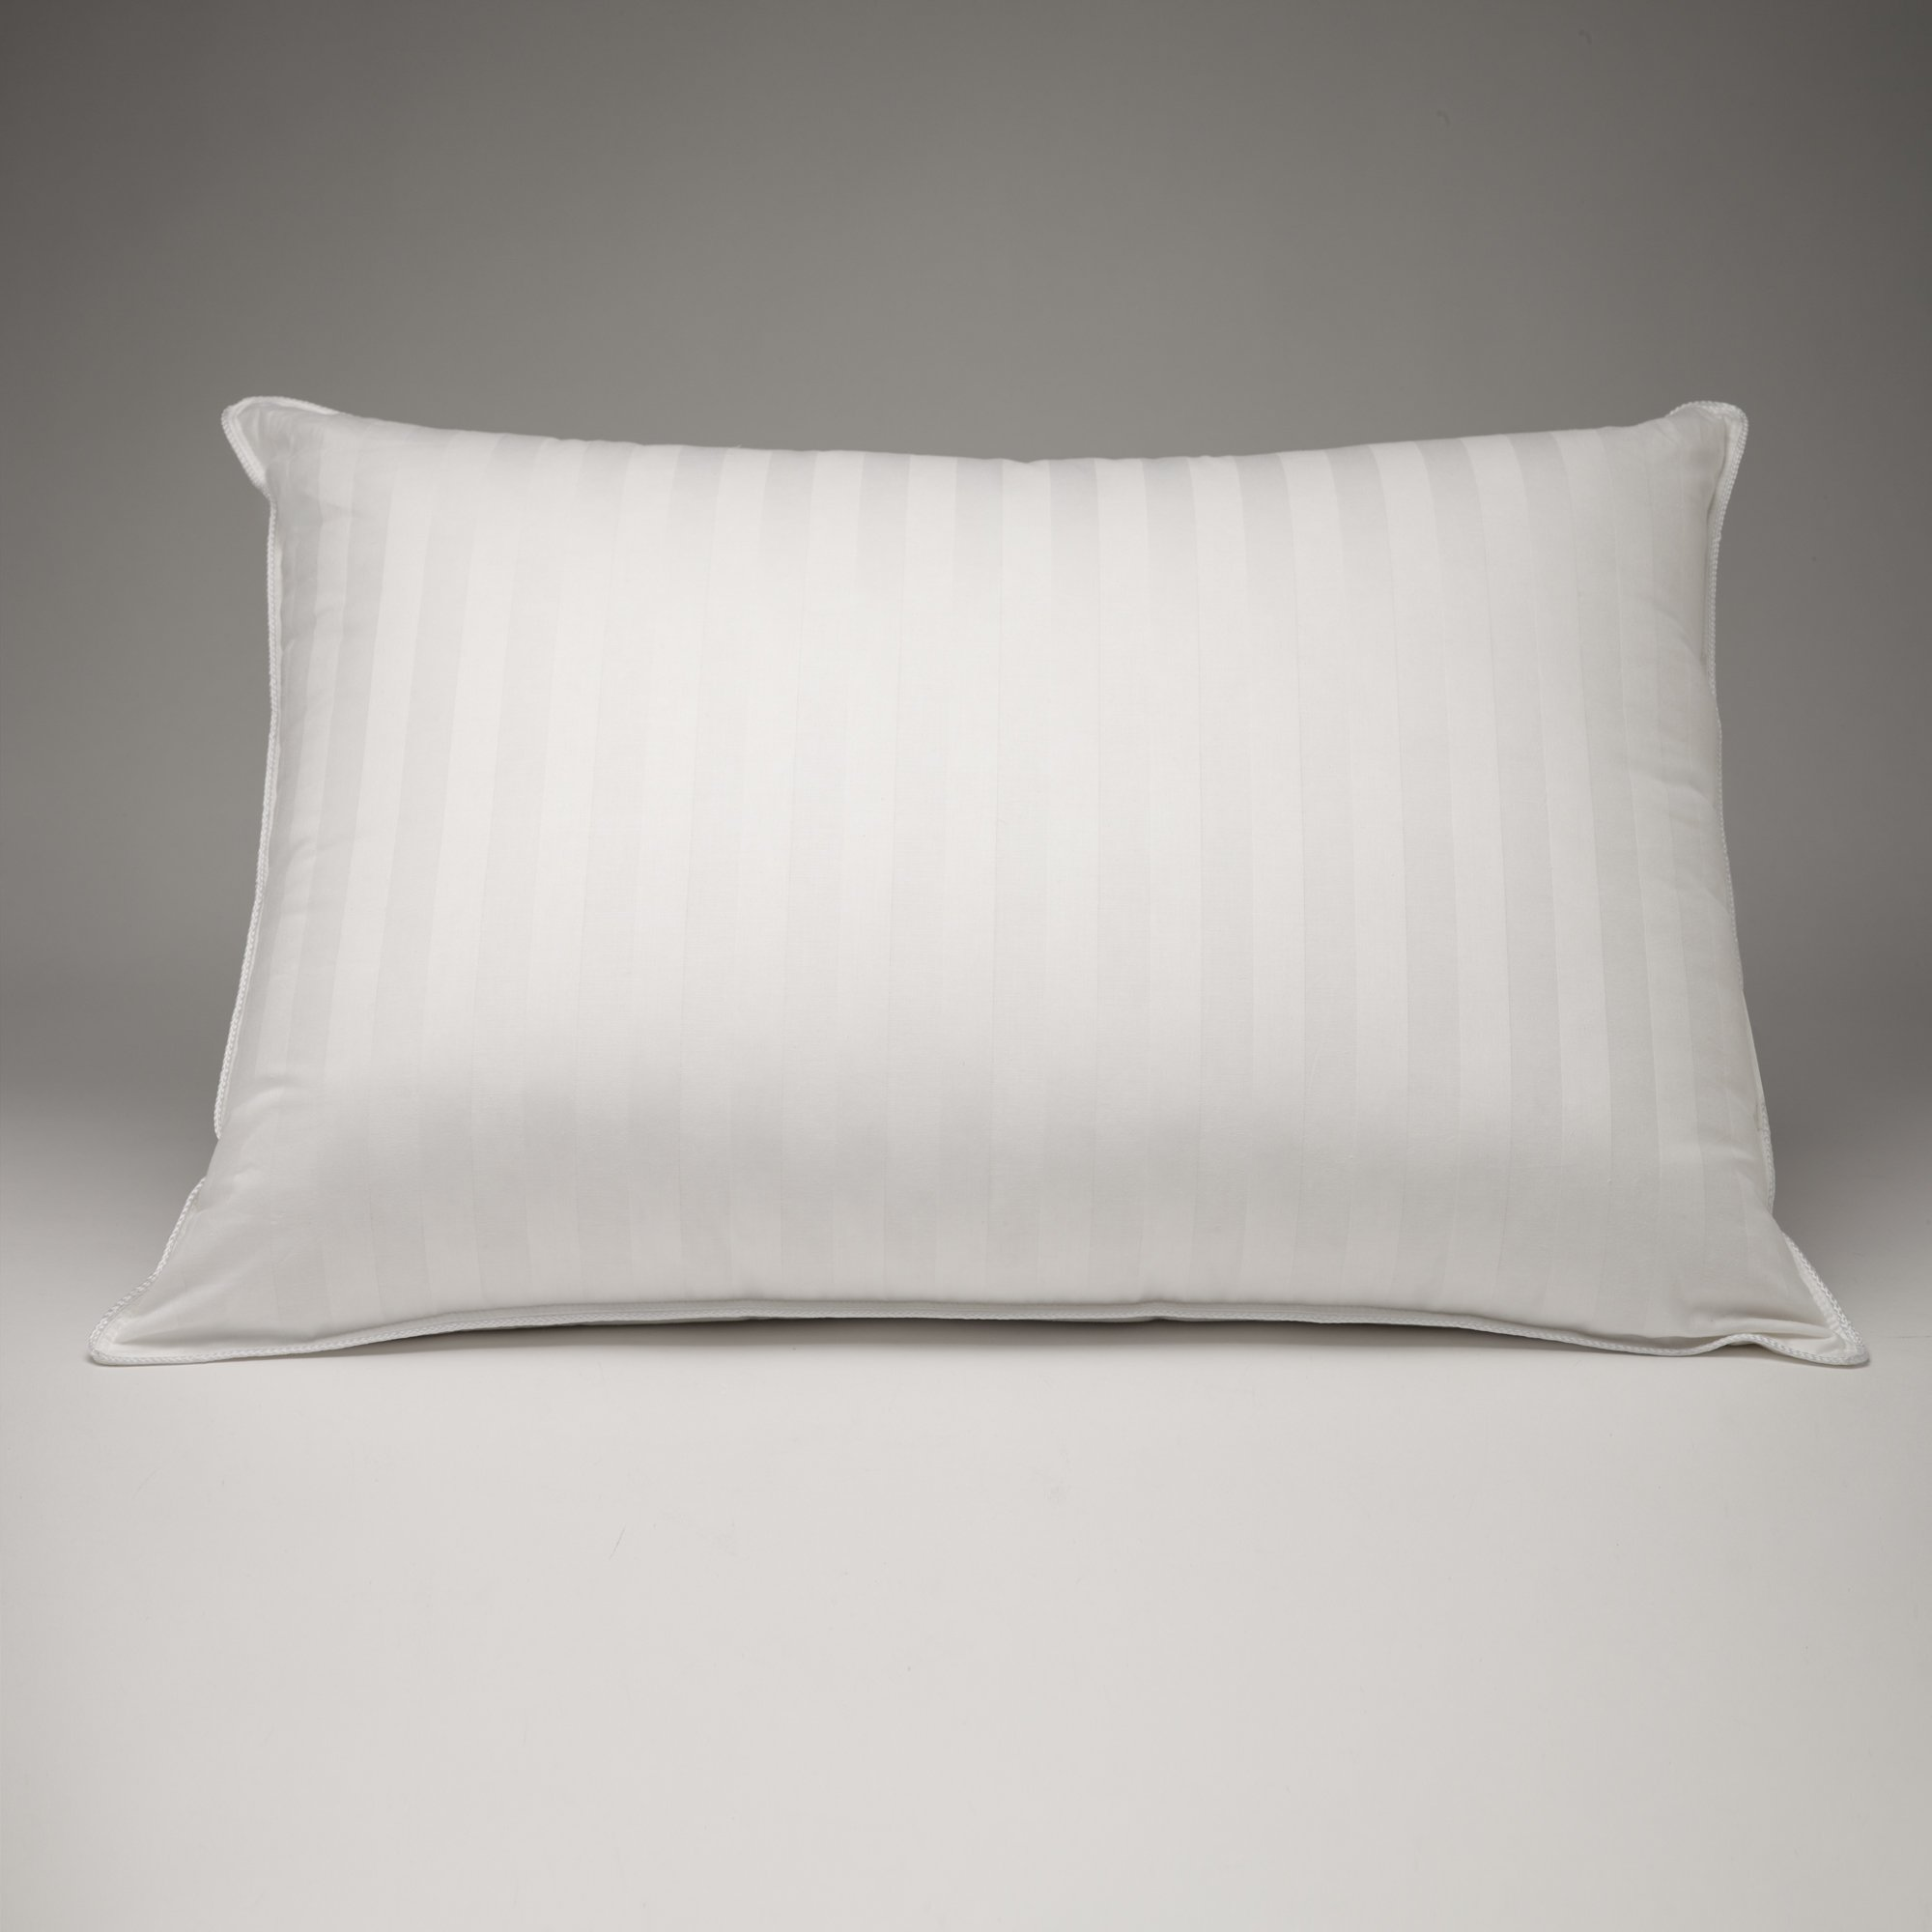 FineFeather 100 % Hungarian White Goose Down luxury Pillow, 700 fill power. (Standard)